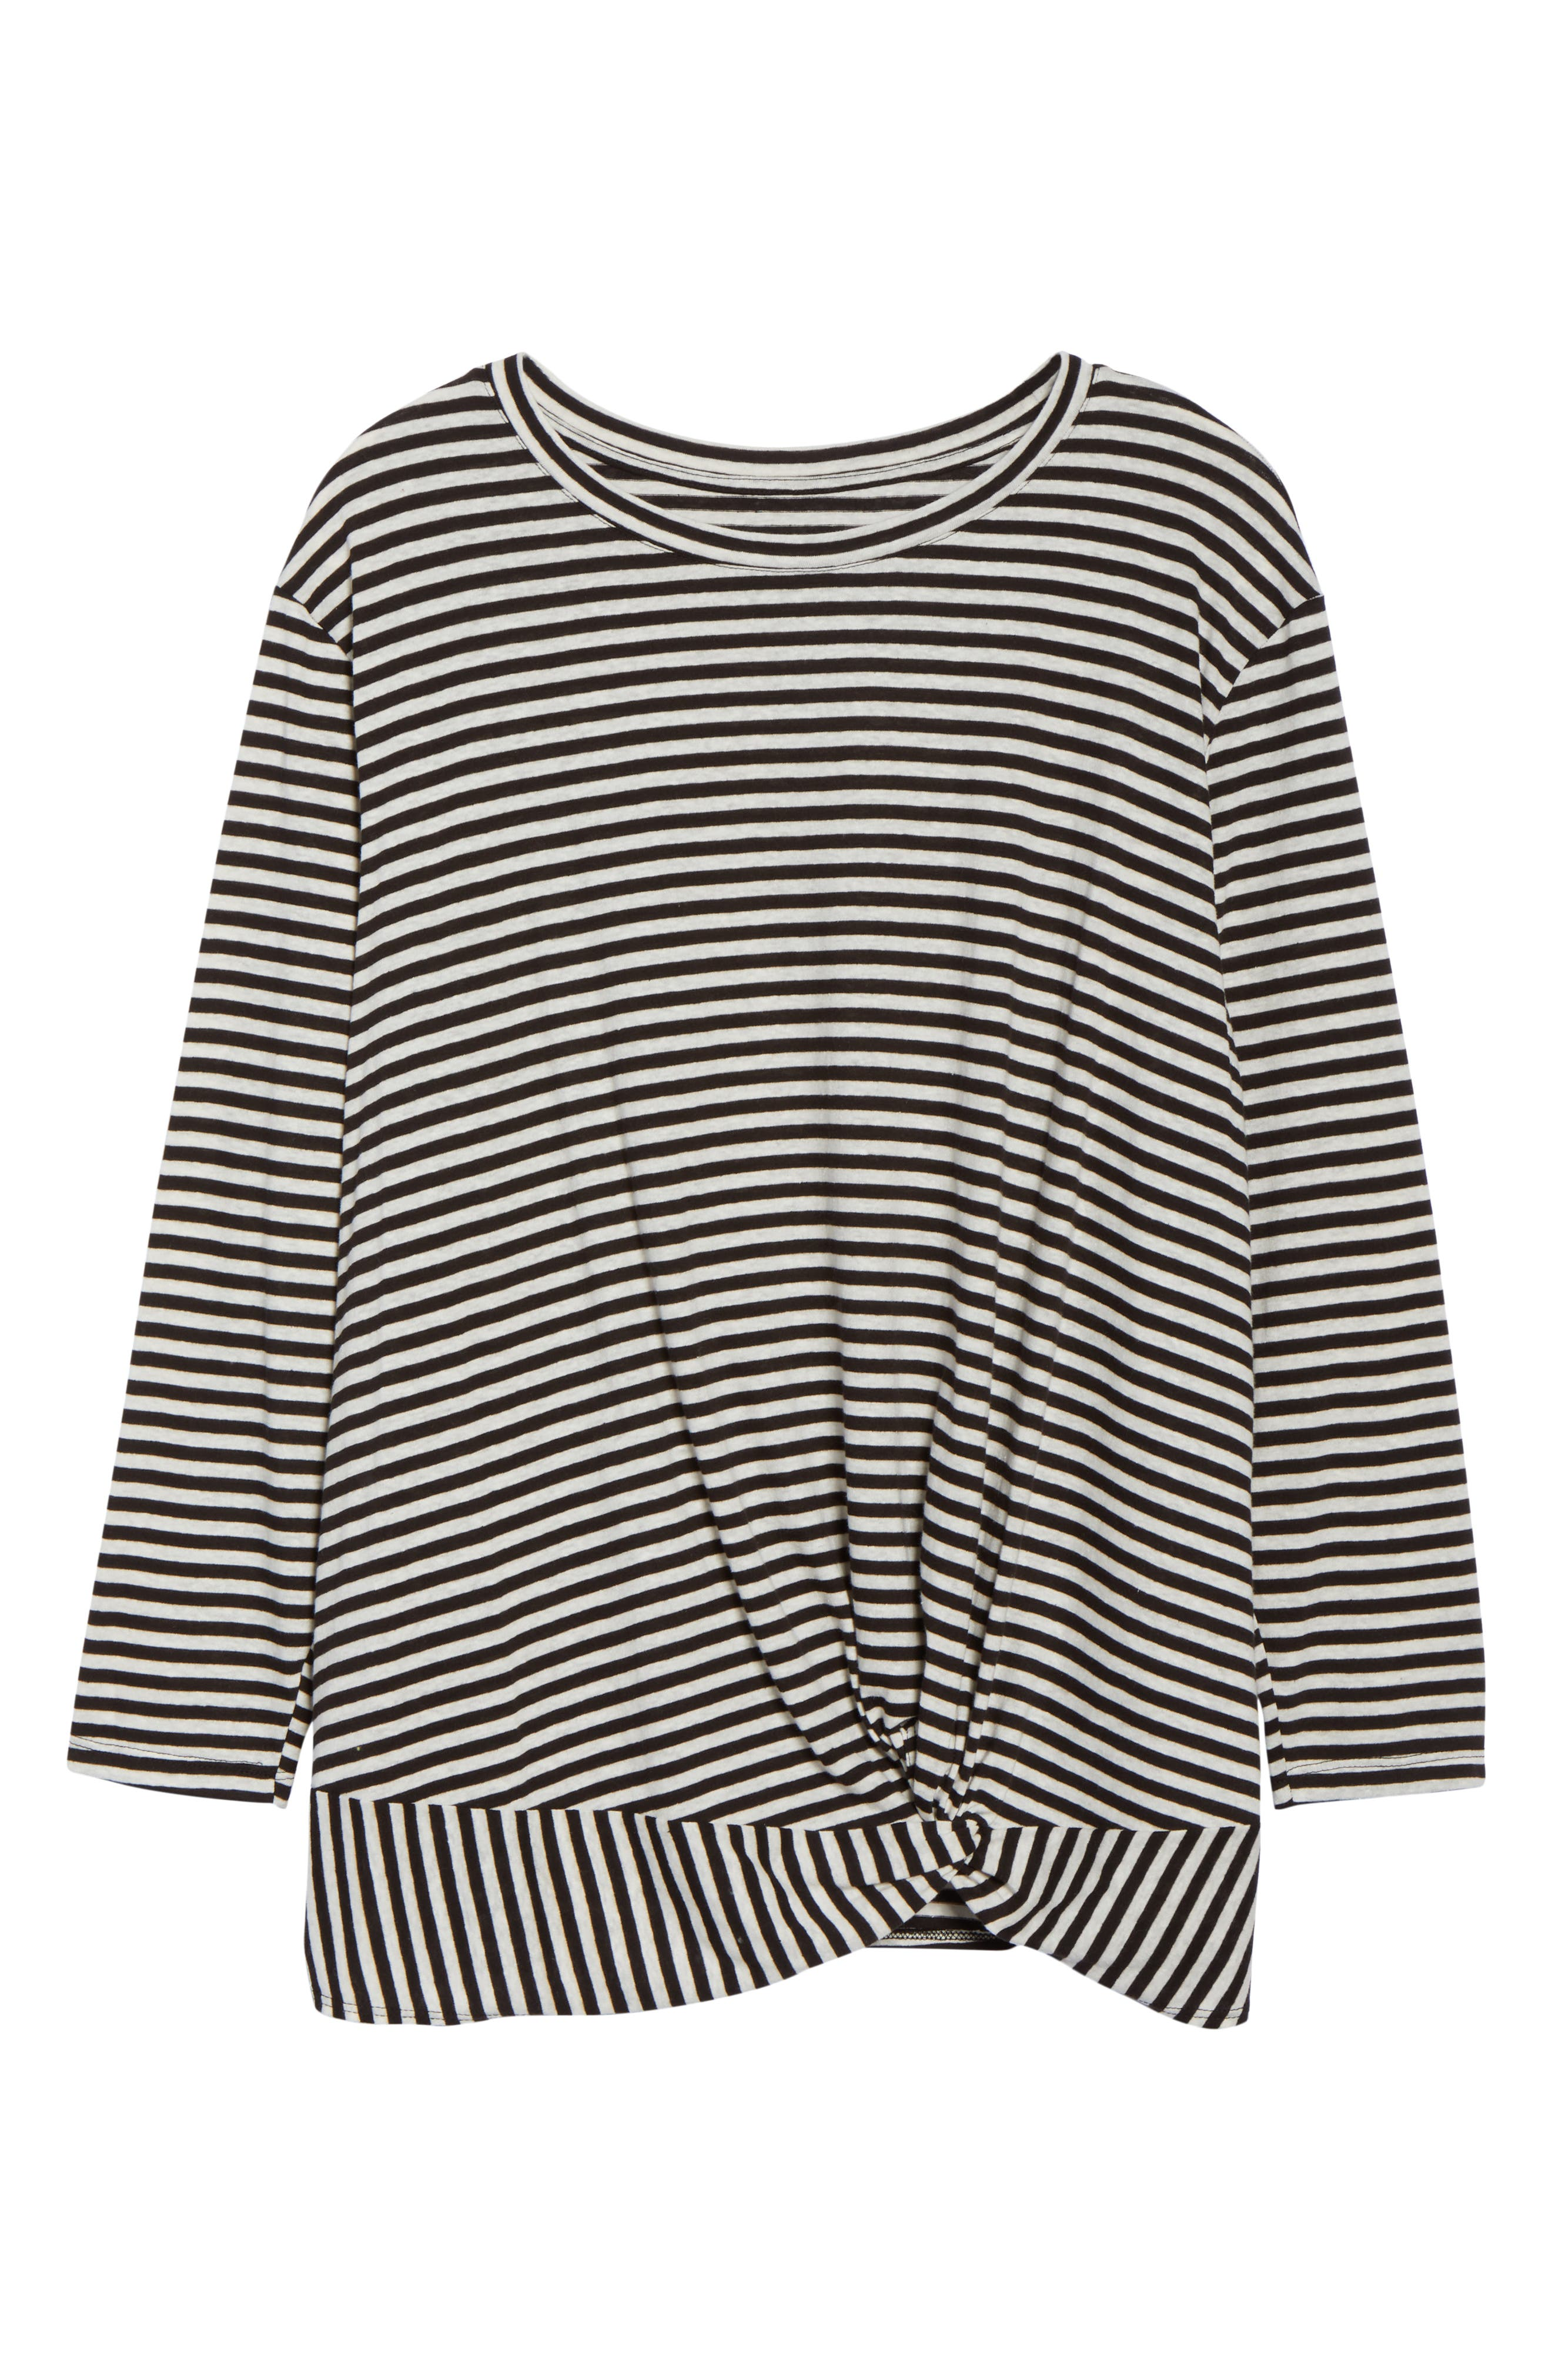 Knot Front Long Sleeve Tee,                             Alternate thumbnail 6, color,                             IVORY- BLACK EVEN STRIPE